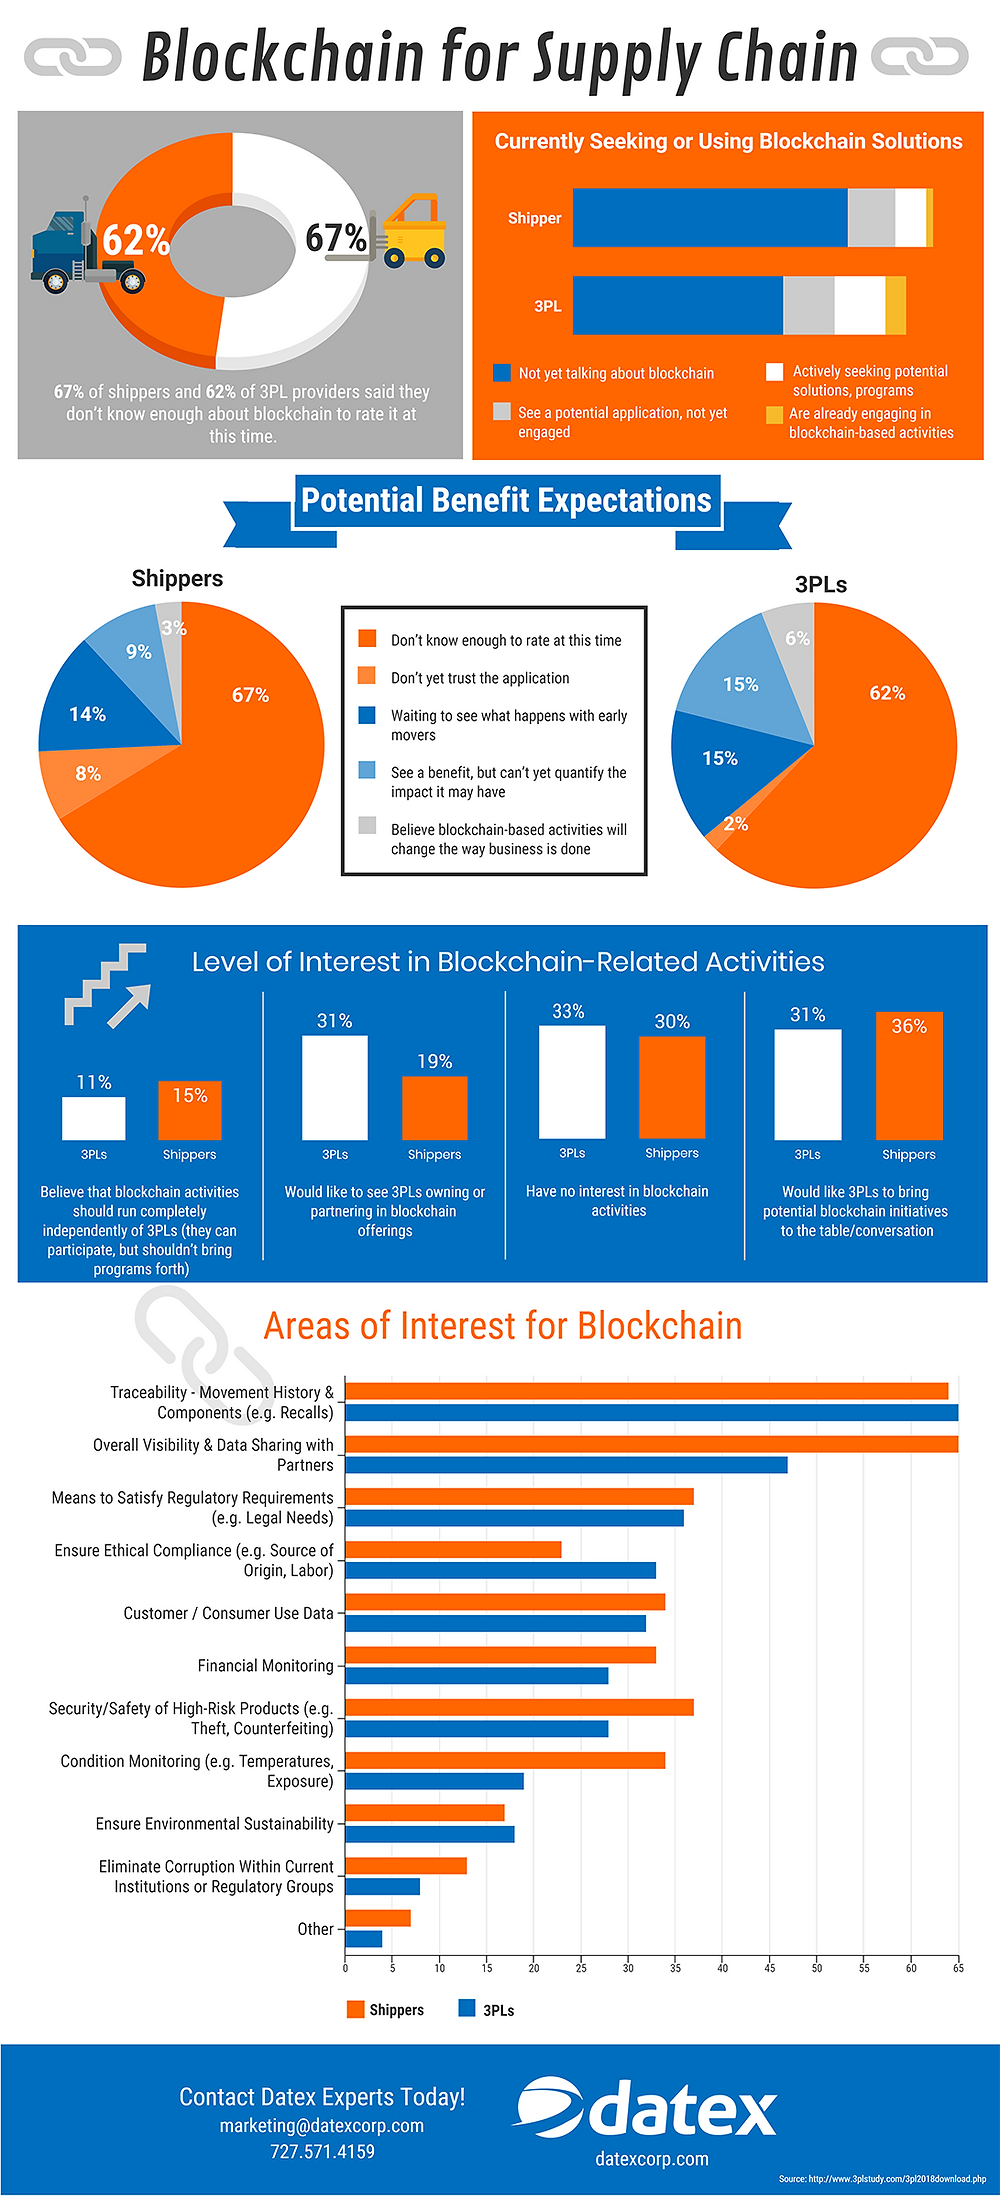 Blockchain in Supply Chain, 2018 3PL study; Source: Datex Corp.